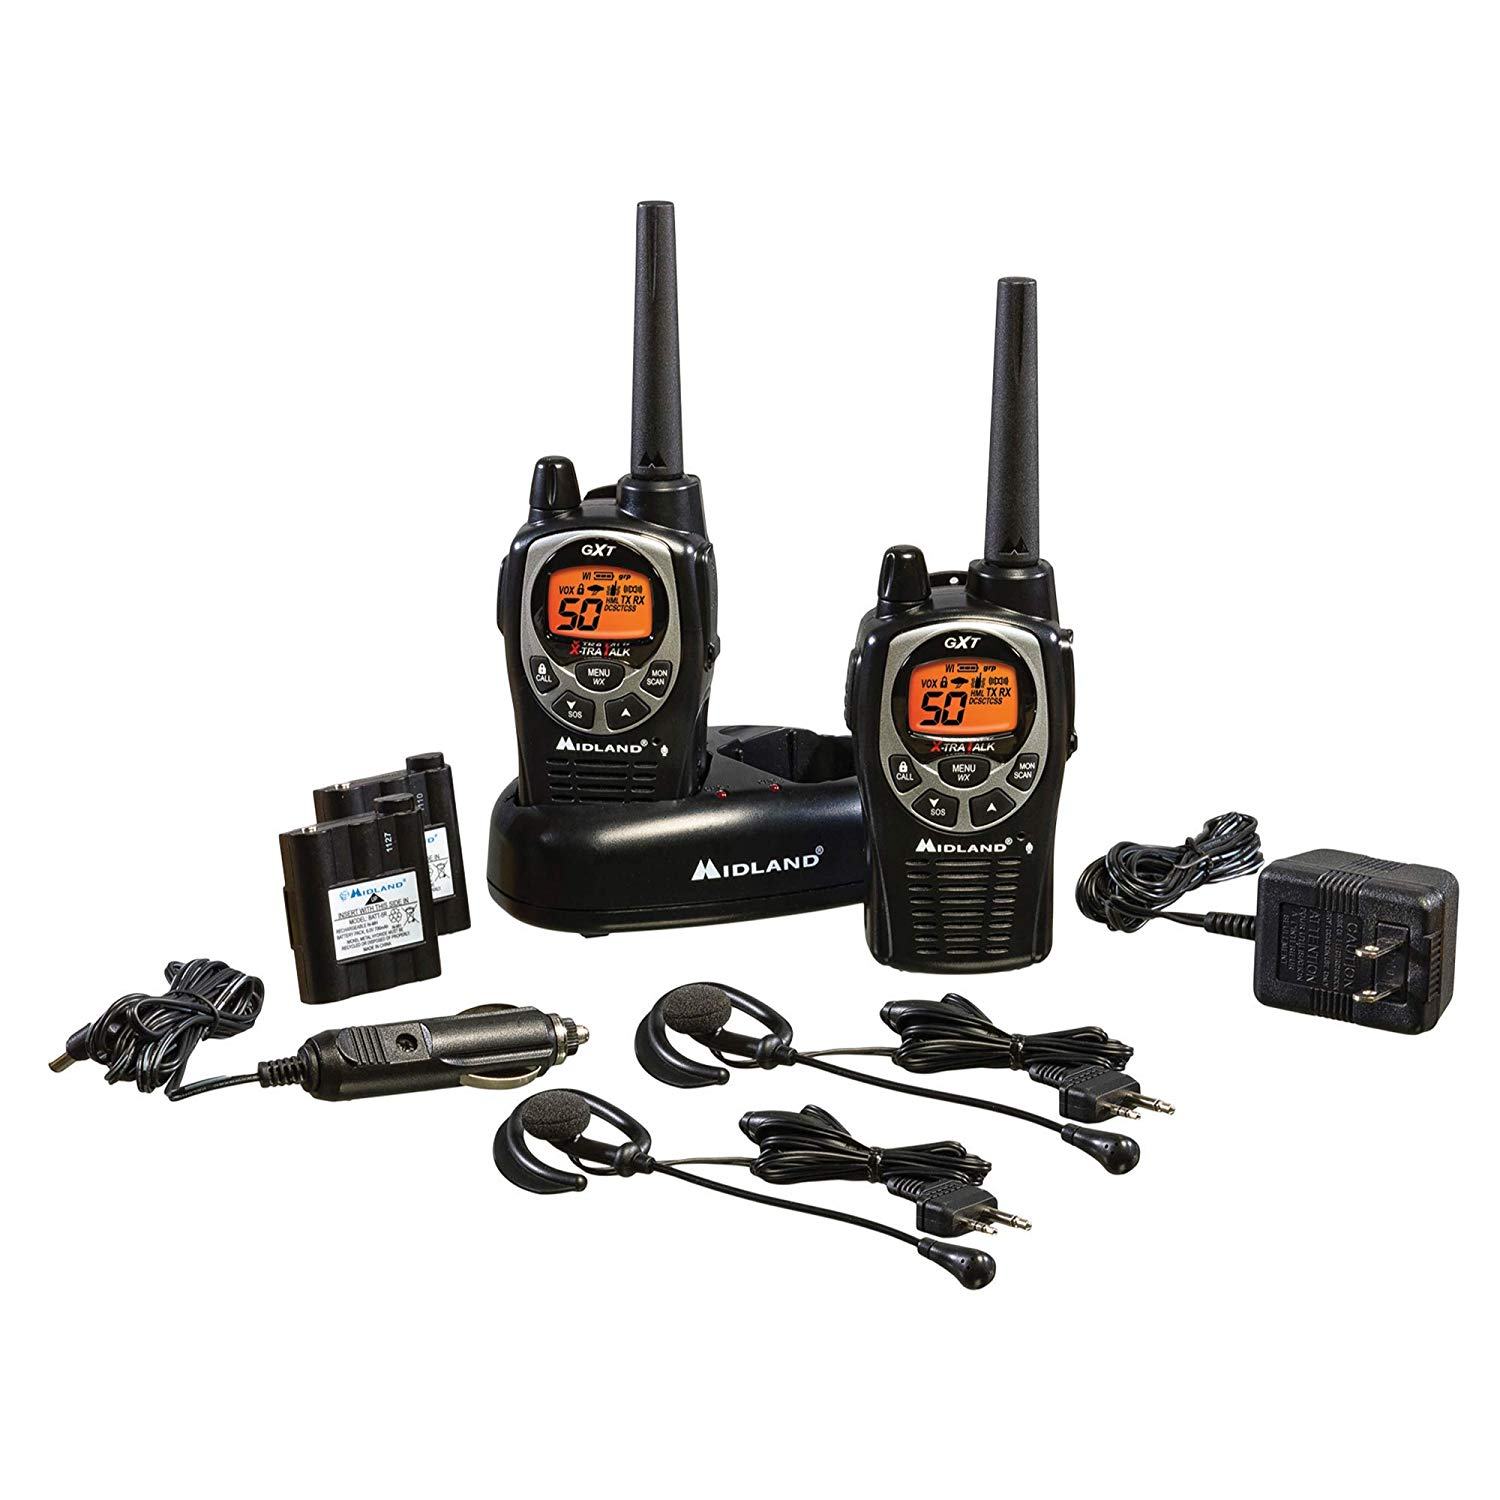 Midland GXT1000VP4 Review [GMRS Two Way Radio]